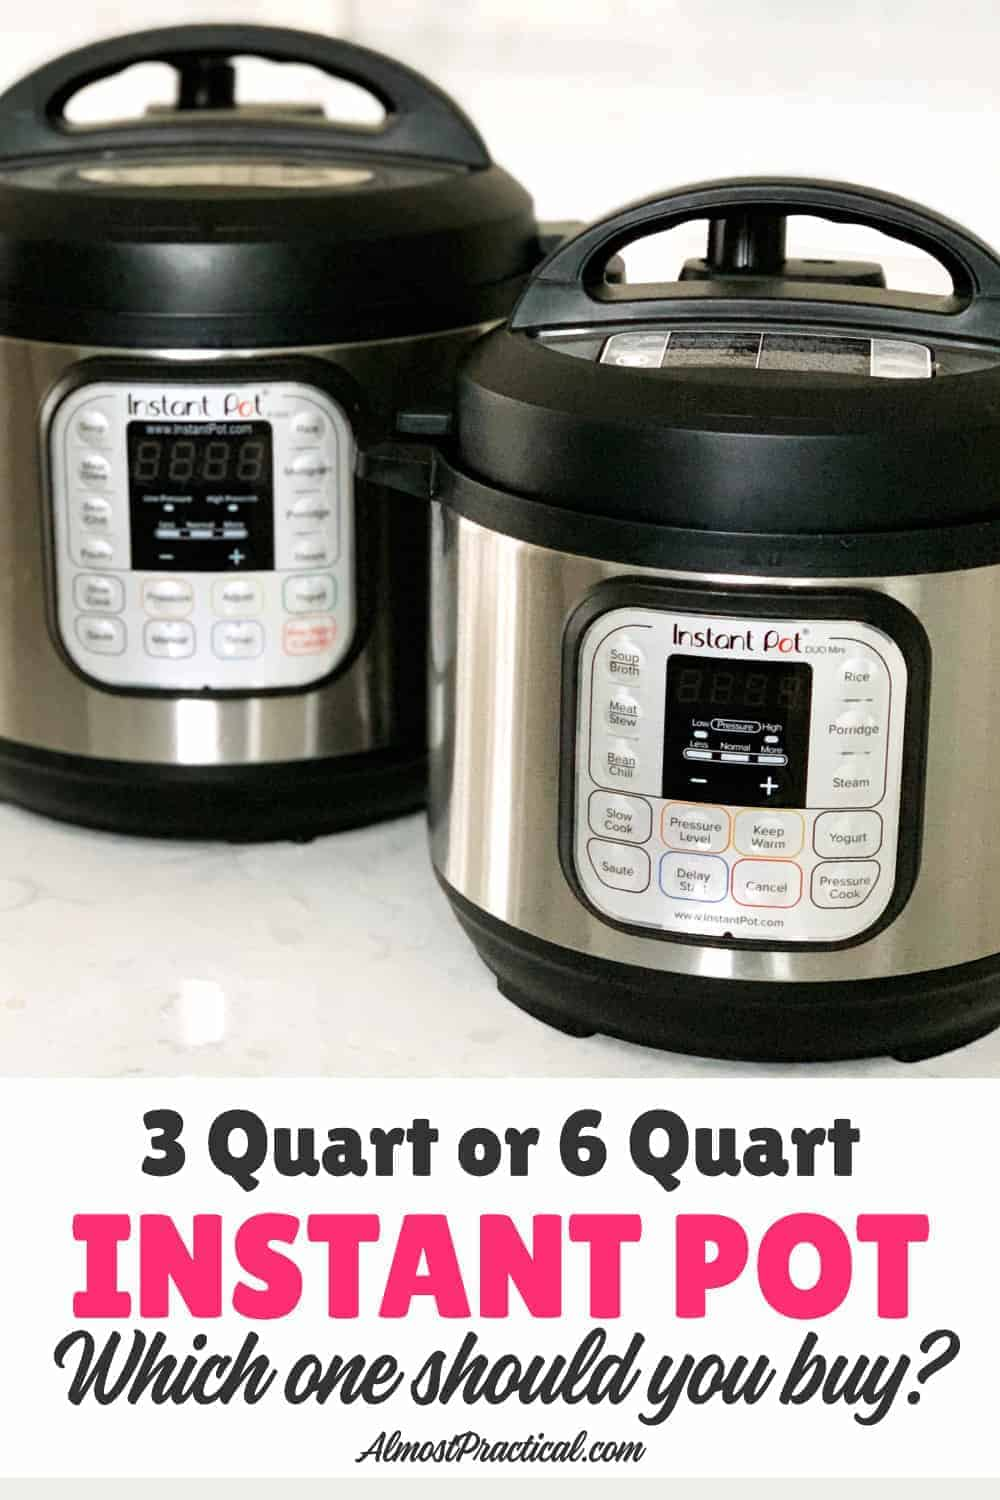 2 Instant Pots next to each other - 3 qt and 6 qt